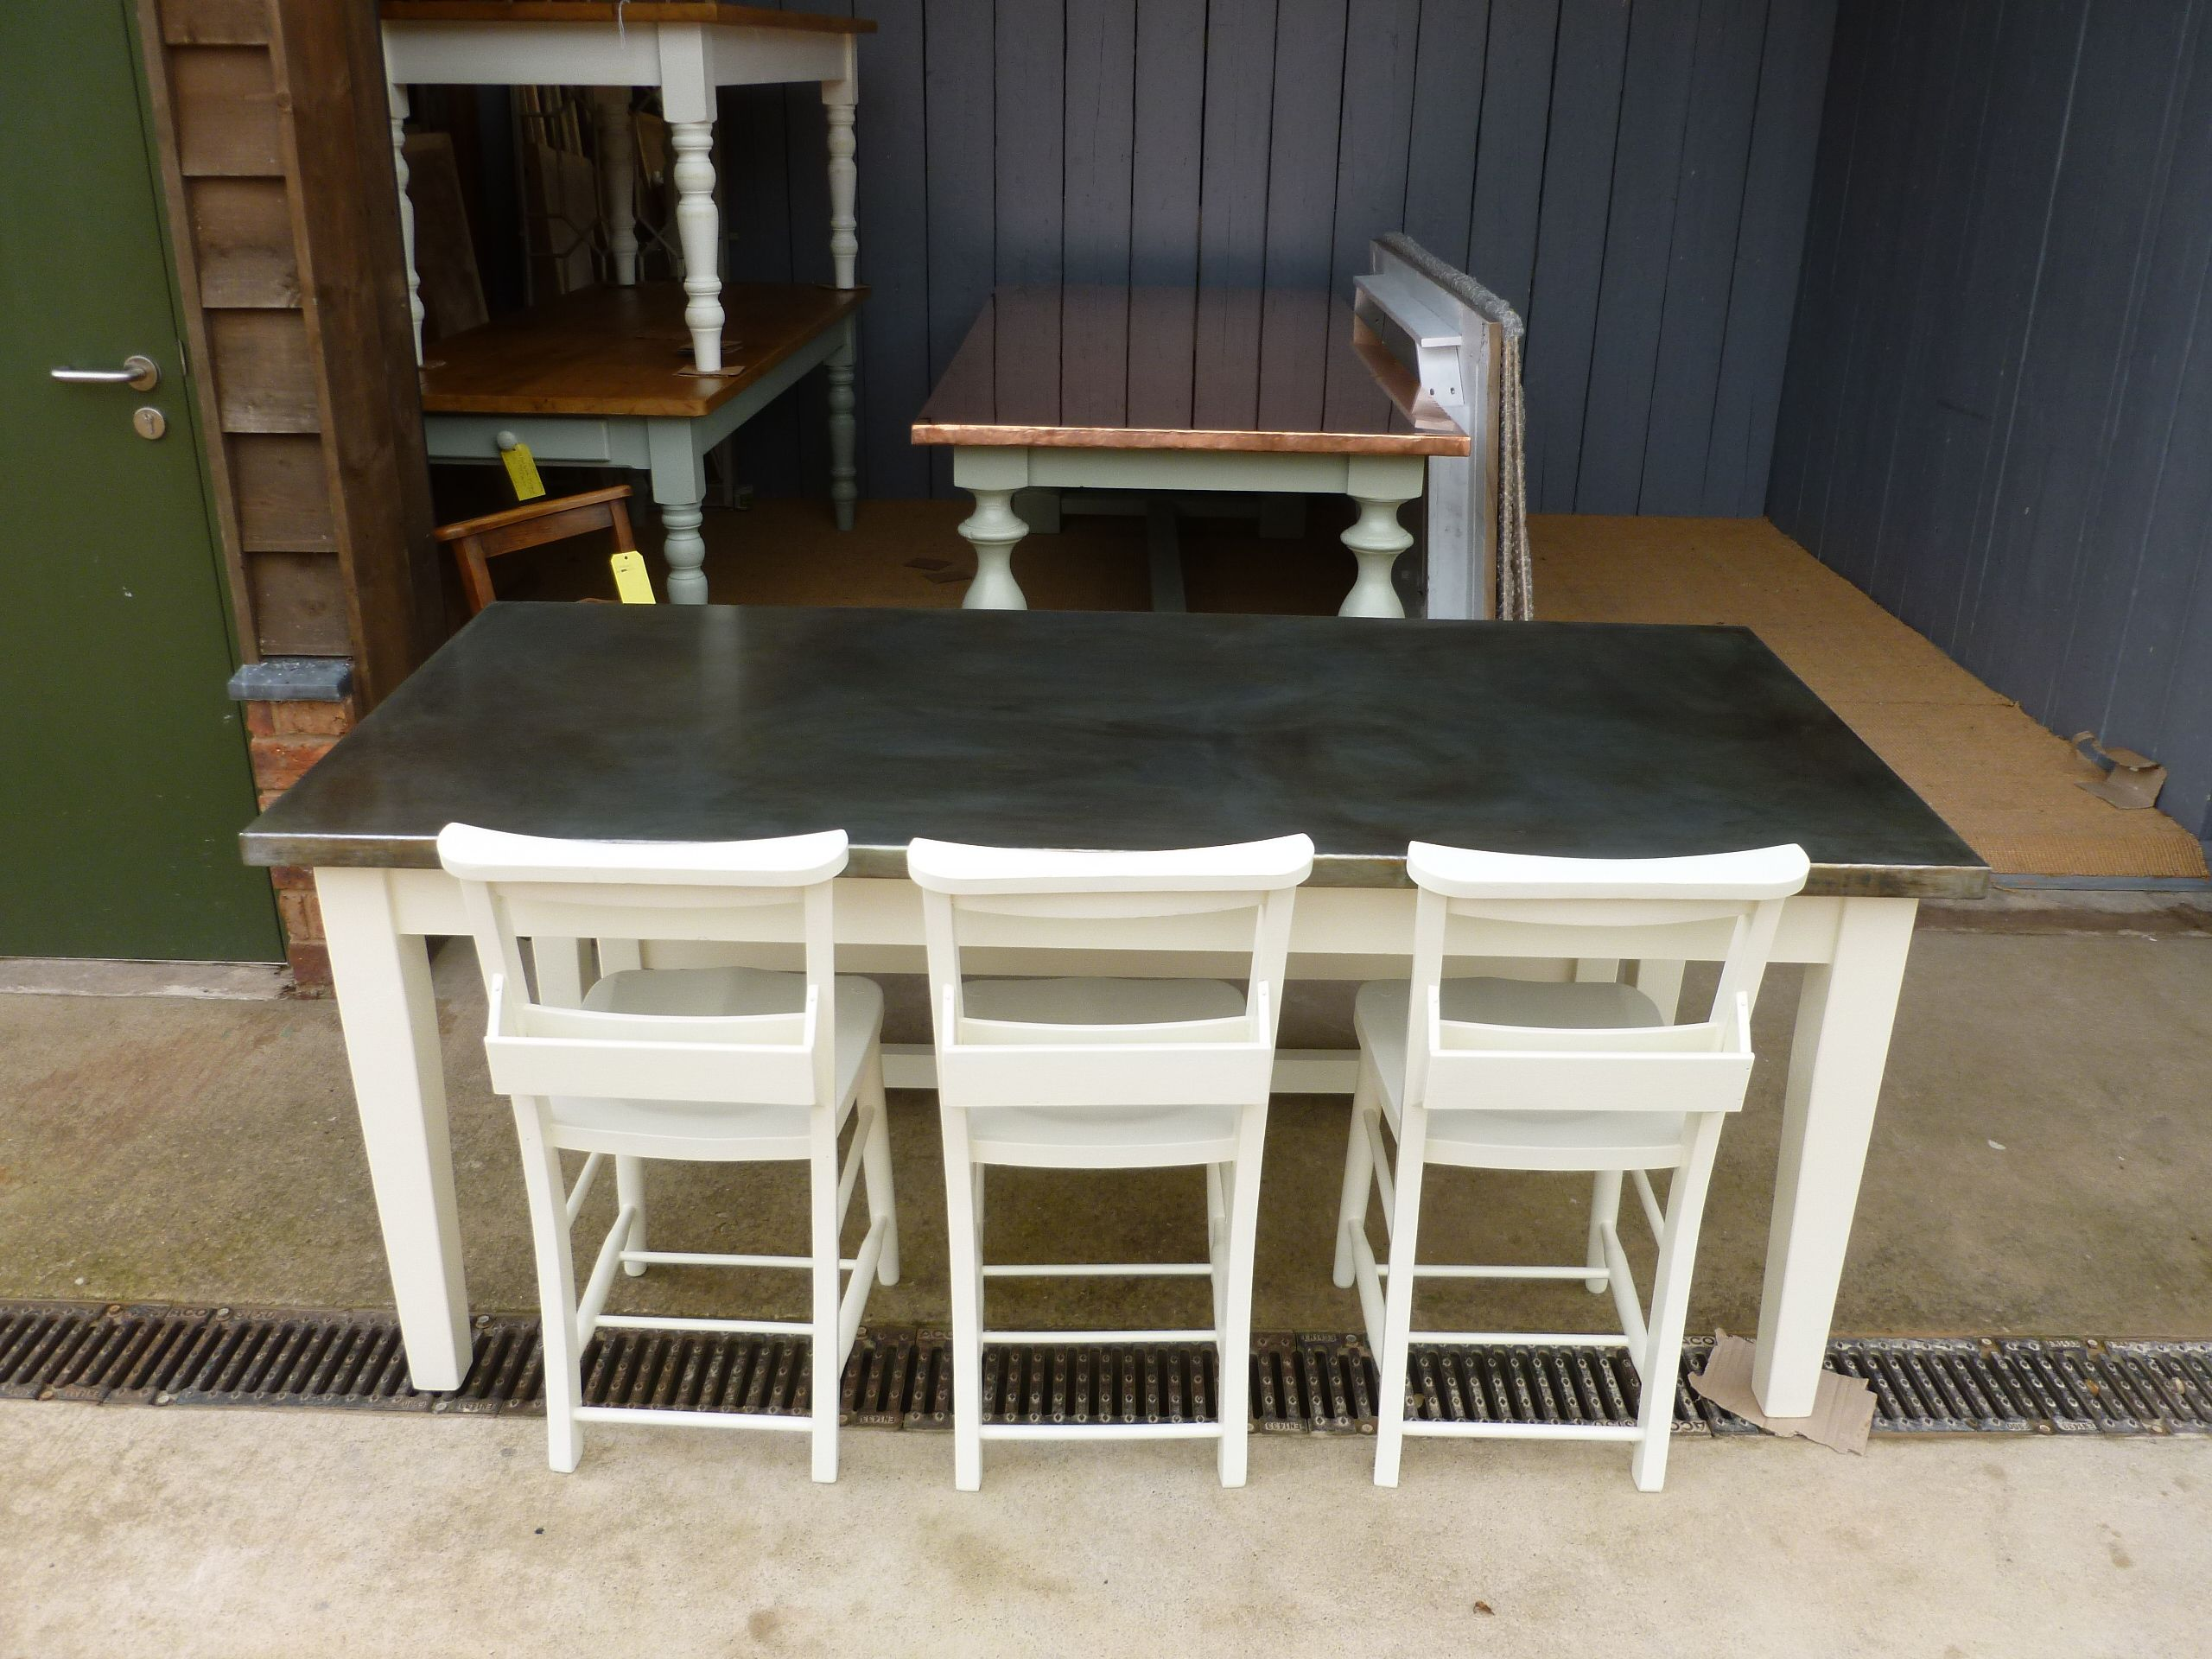 Fantastic furniture hallway table  UKAA have made this bespoke table for a customer It has a lovely